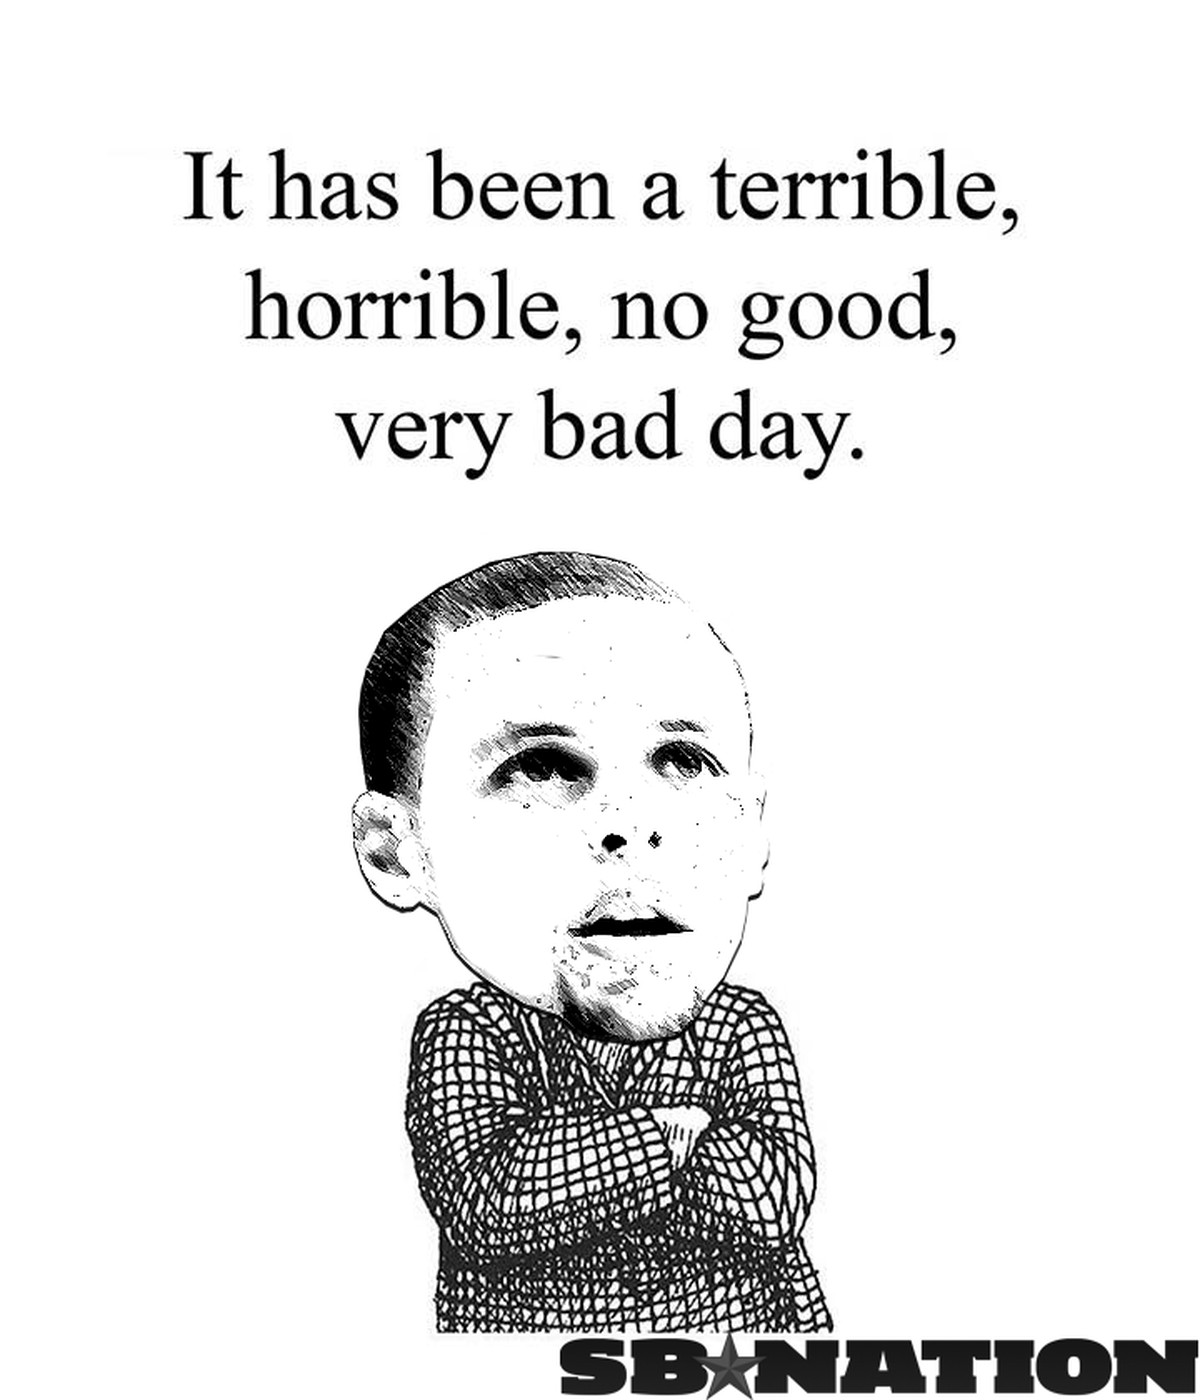 Stephen Curry Had A Terrible, Horrible, No Good, Very Bad